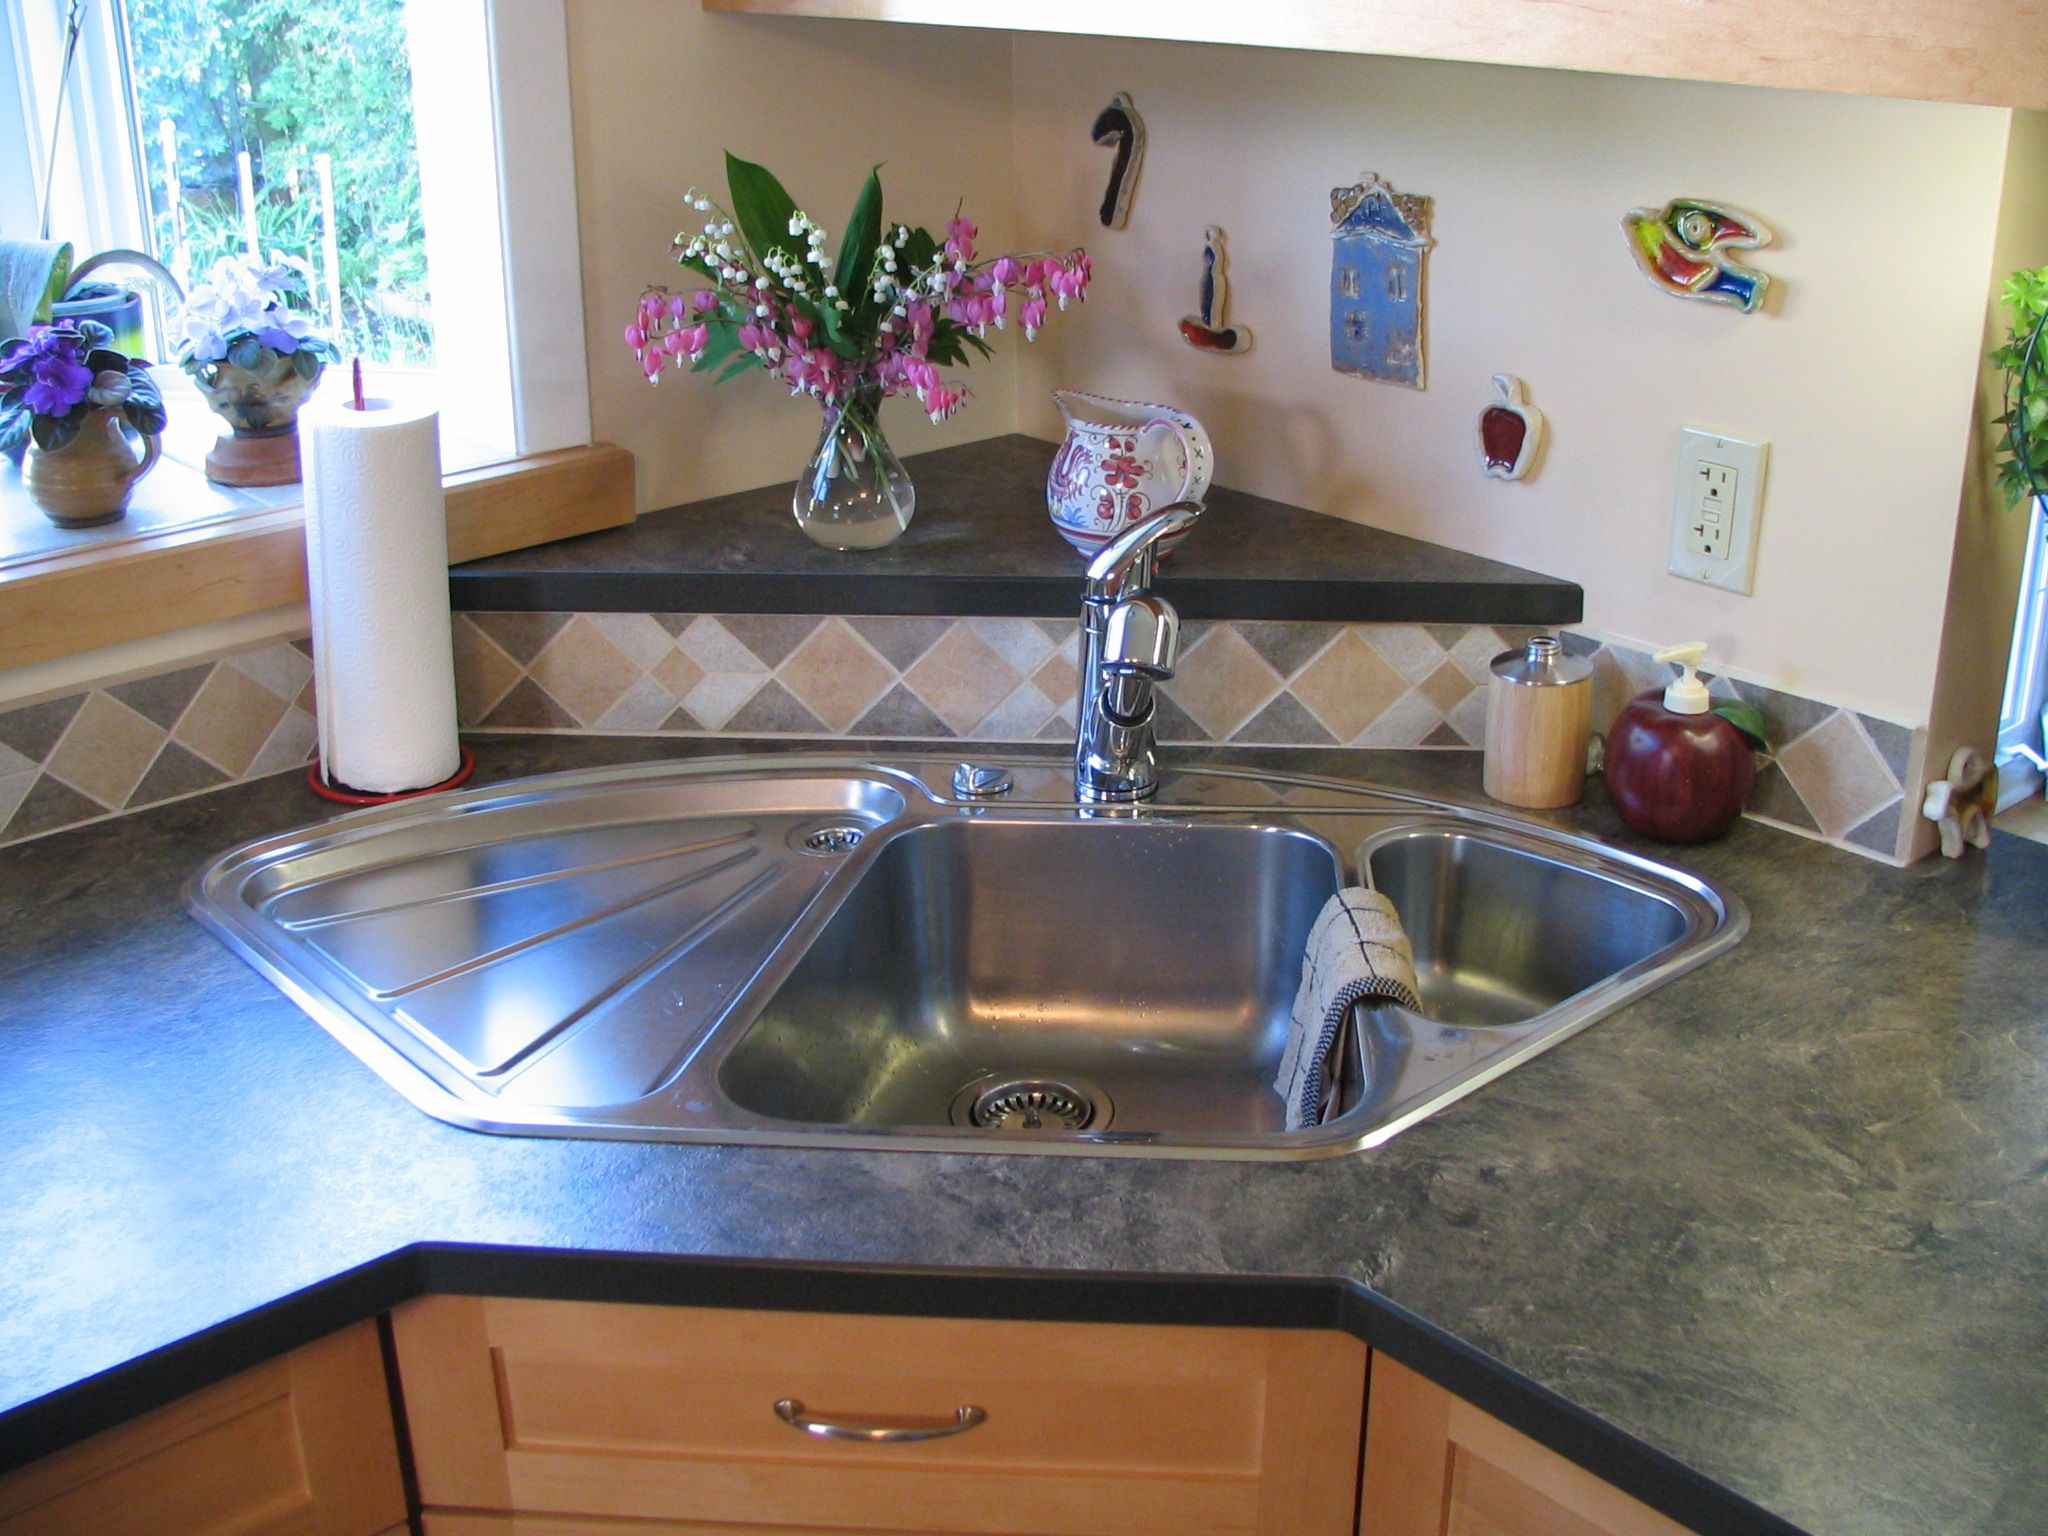 Blanco Corner Sink With Raised Back Triangle Laminate Countertops With Corian Edge Cabinet